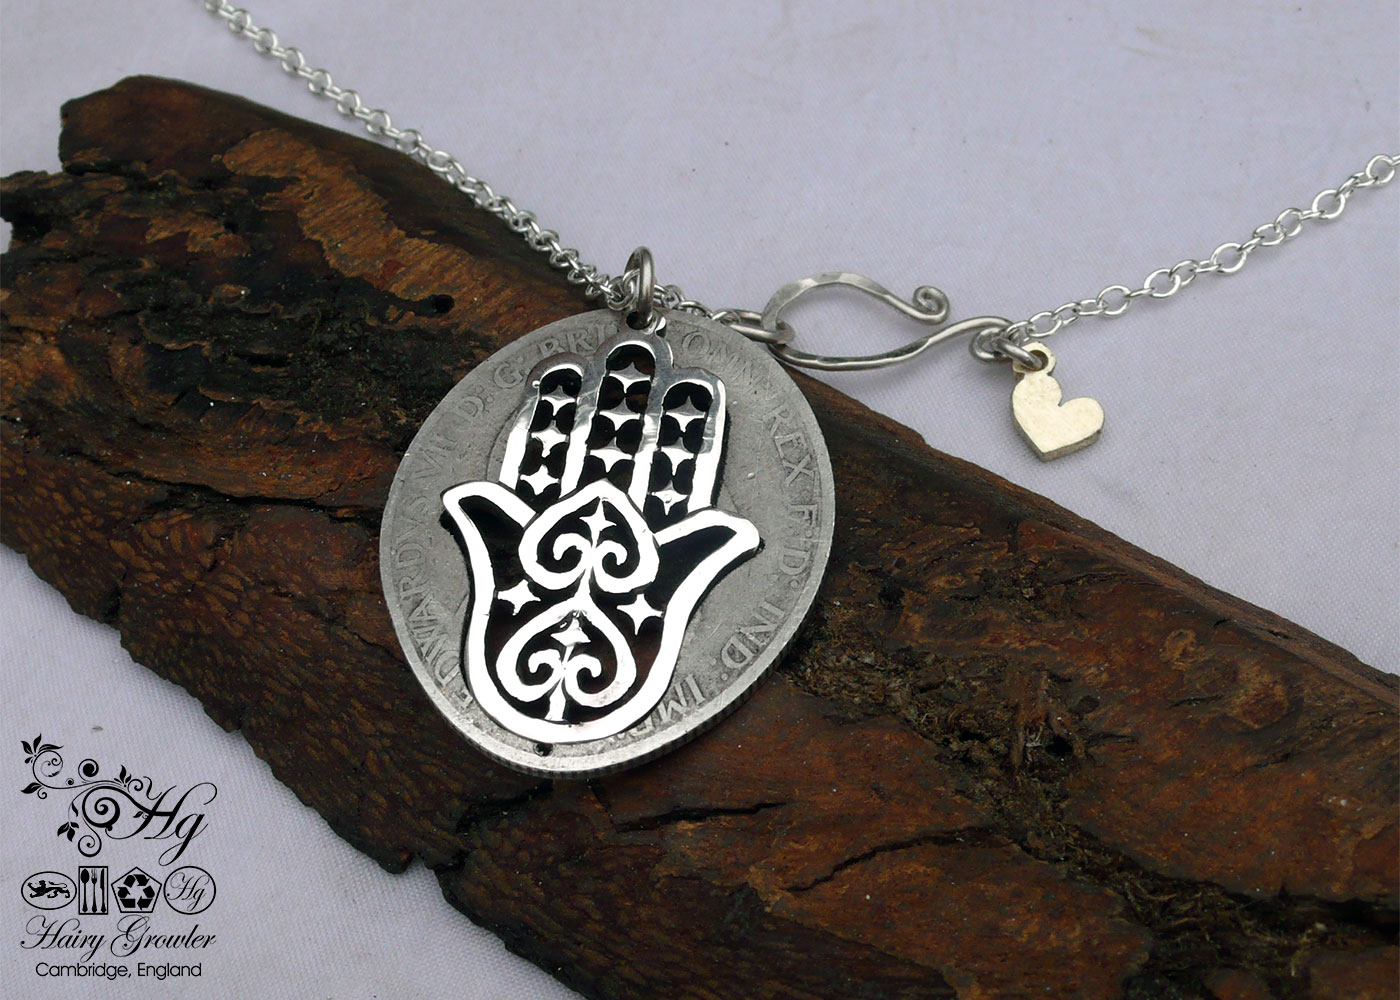 Hand of Hamsa / Fatima silver pendants - handmade and recycled using silver coins. khmissa